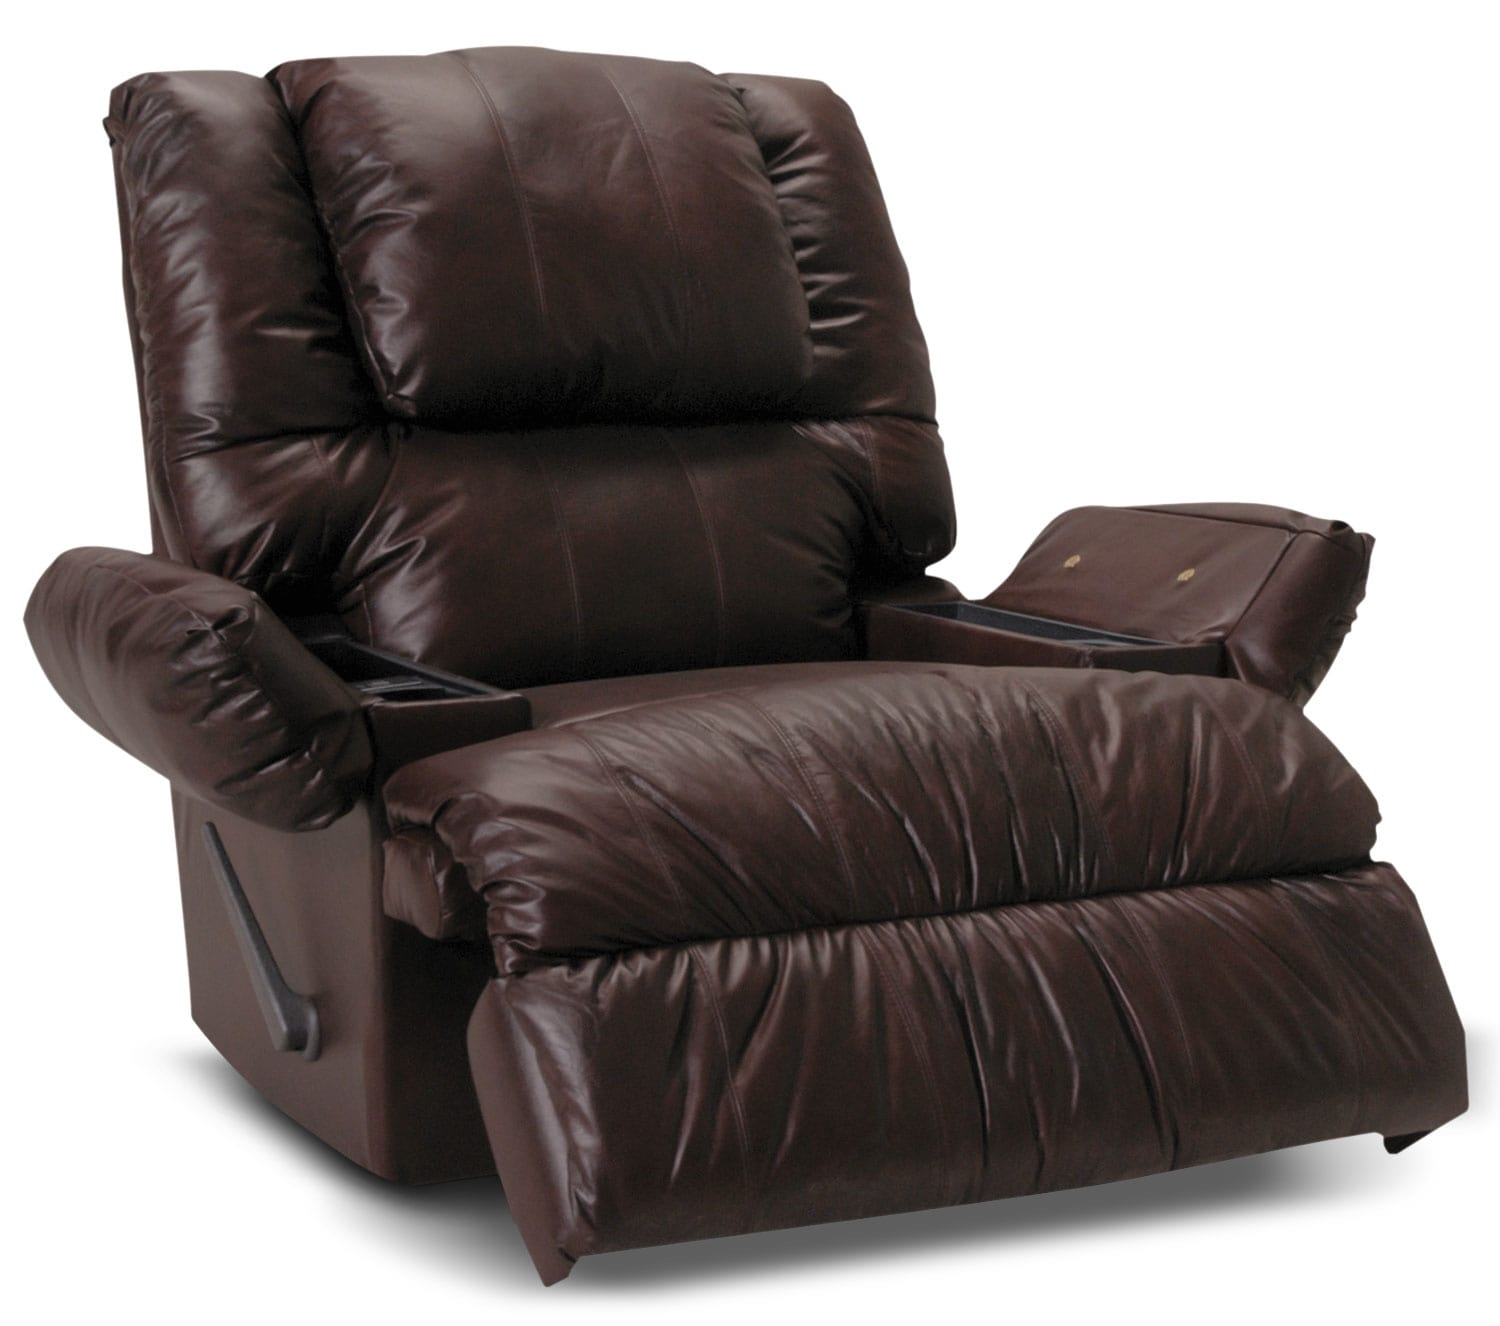 Designed2B Recliner 5598 Bonded Leather Rocker with ...